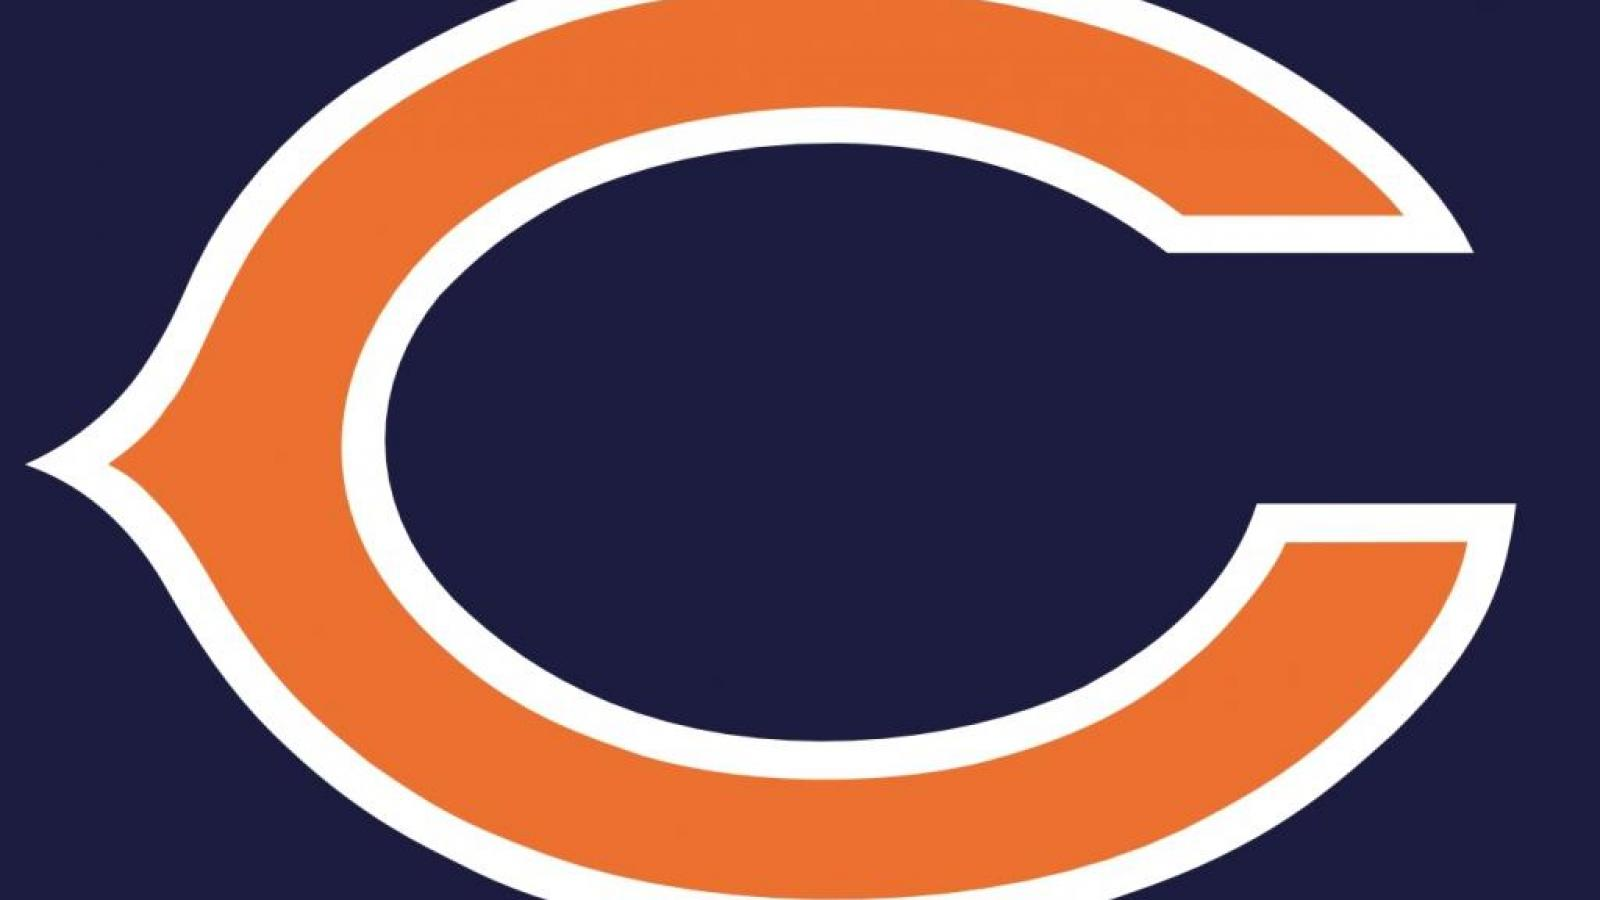 chicago bears logo wallpaper   80523   HQ Desktop Wallpapers 1600x900